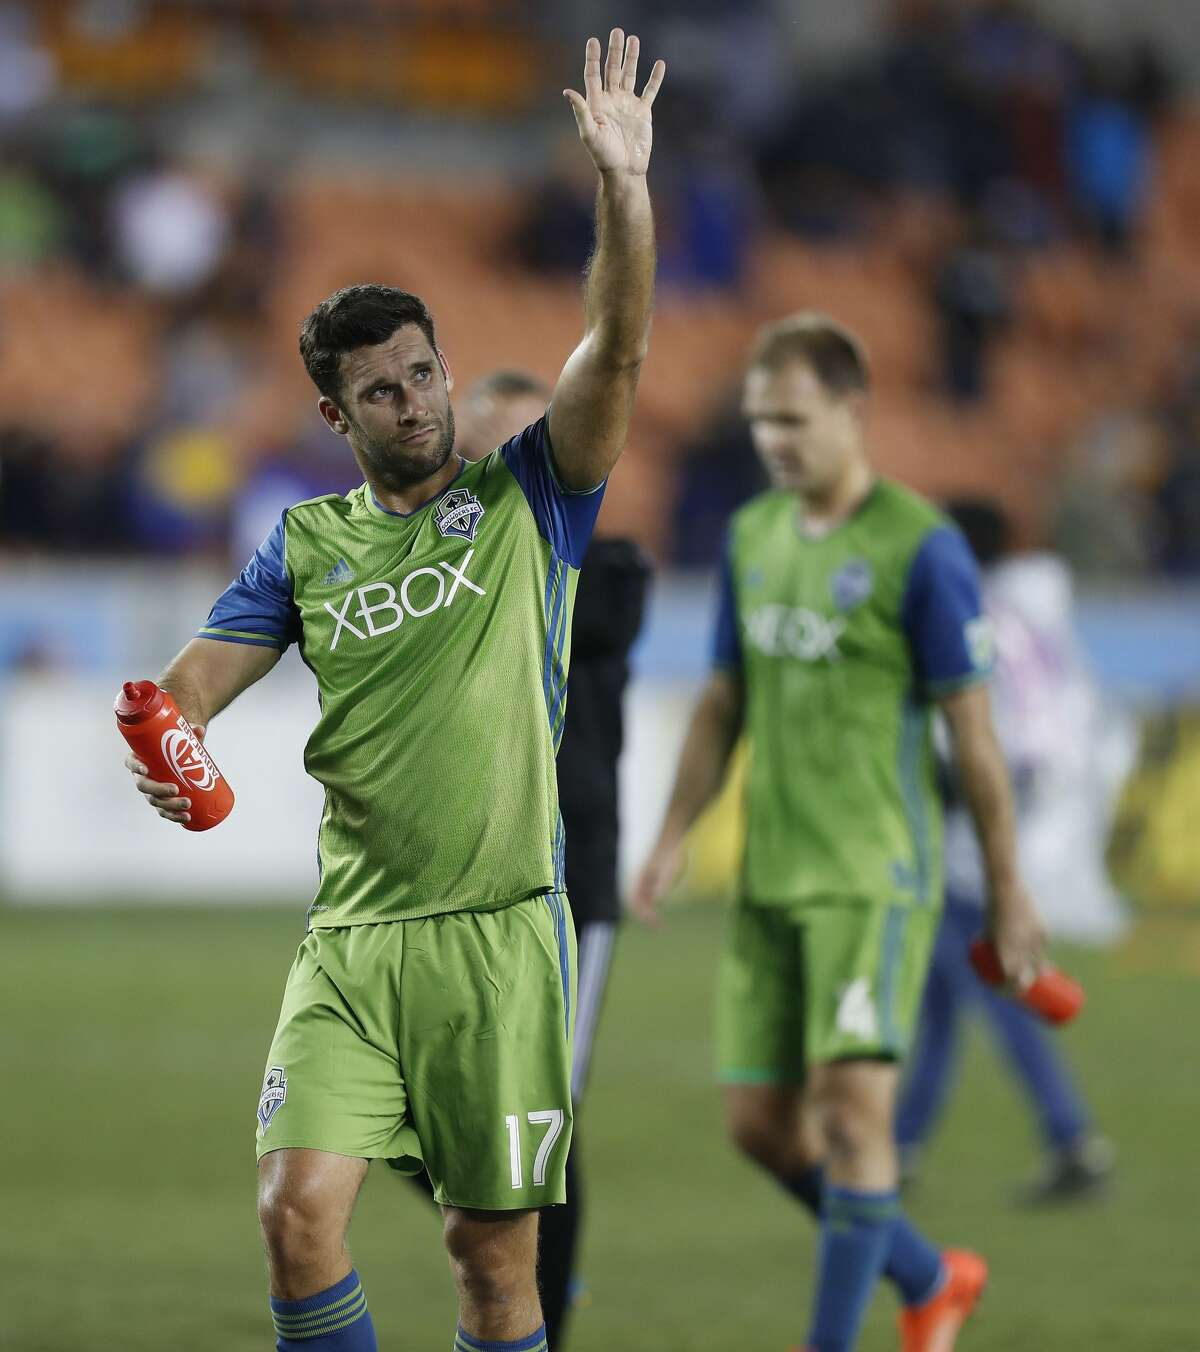 Former Houston Dynamo and current Seattle Sounders defender Will Bruin (17) waves to the crowd after the Dynamo won 2-1 in the season opener MLS soccer game at BBVA Compass stadium, Saturday, March 4, 2017, in Houston. ( Karen Warren / Houston Chronicle )